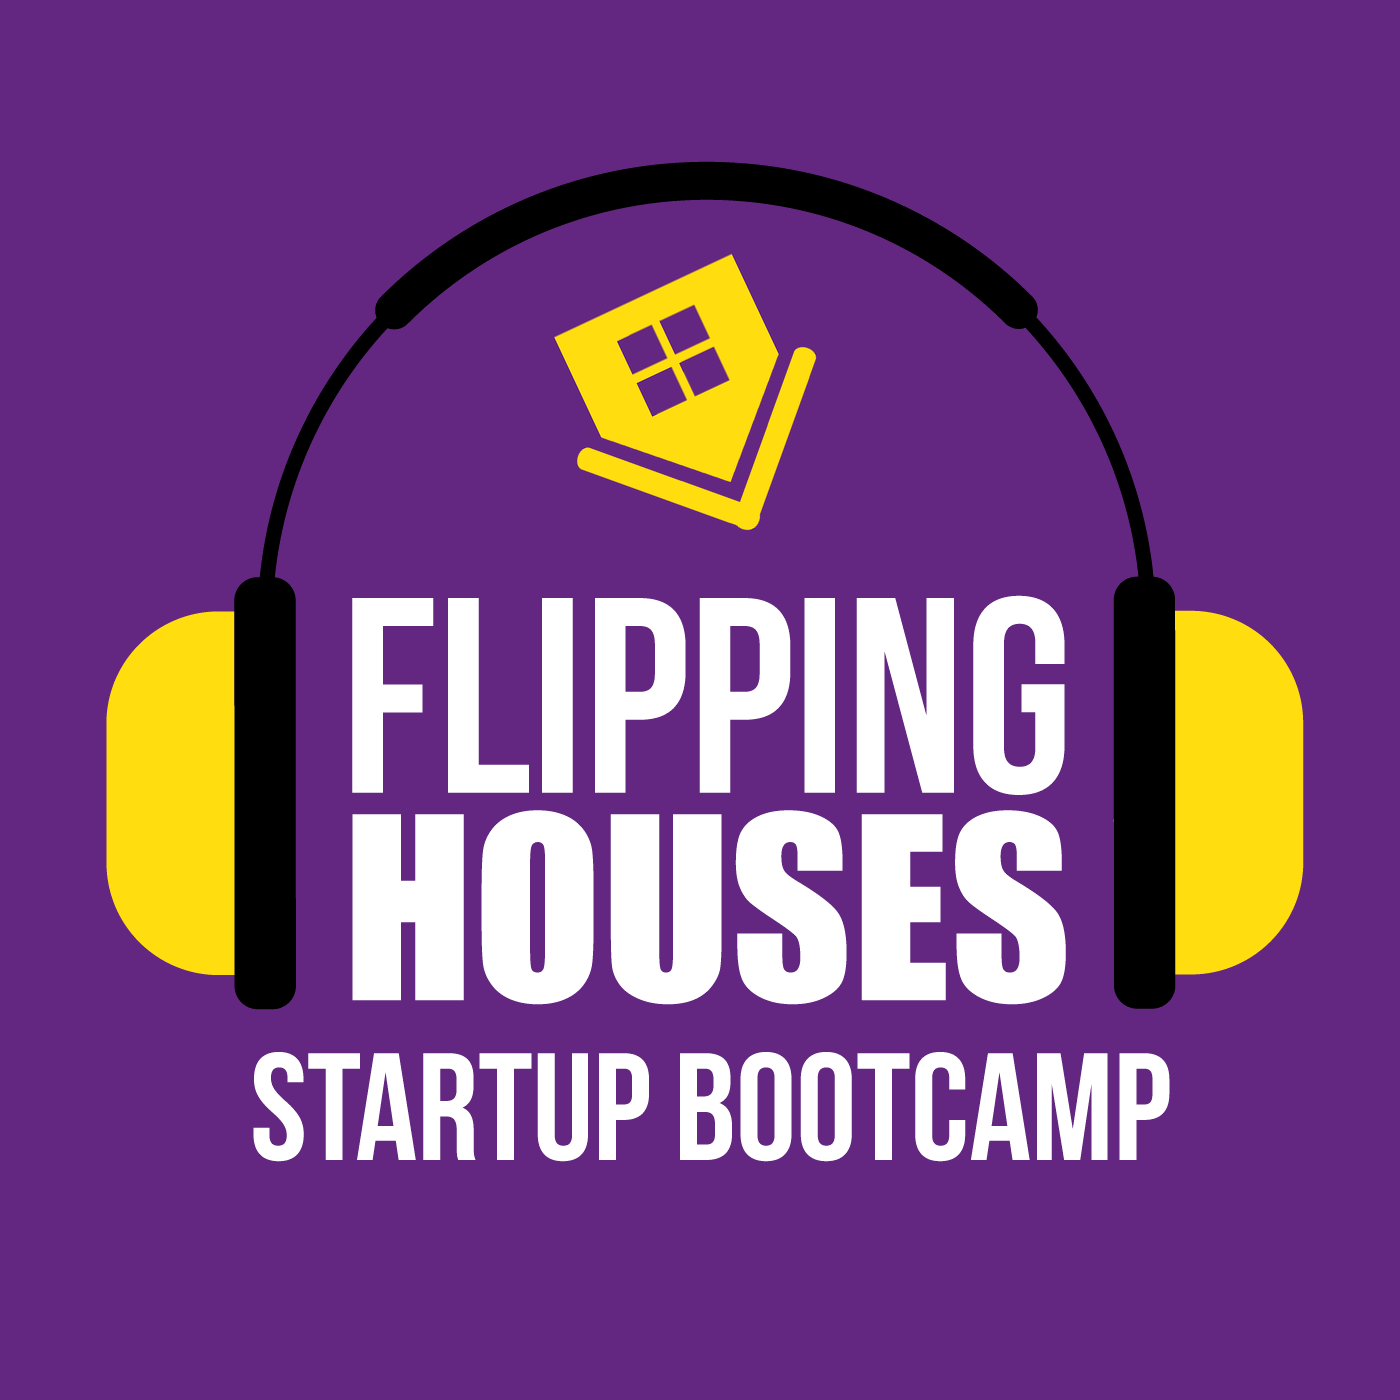 Season 4 Introduction – Flipping Houses Startup Bootcamp